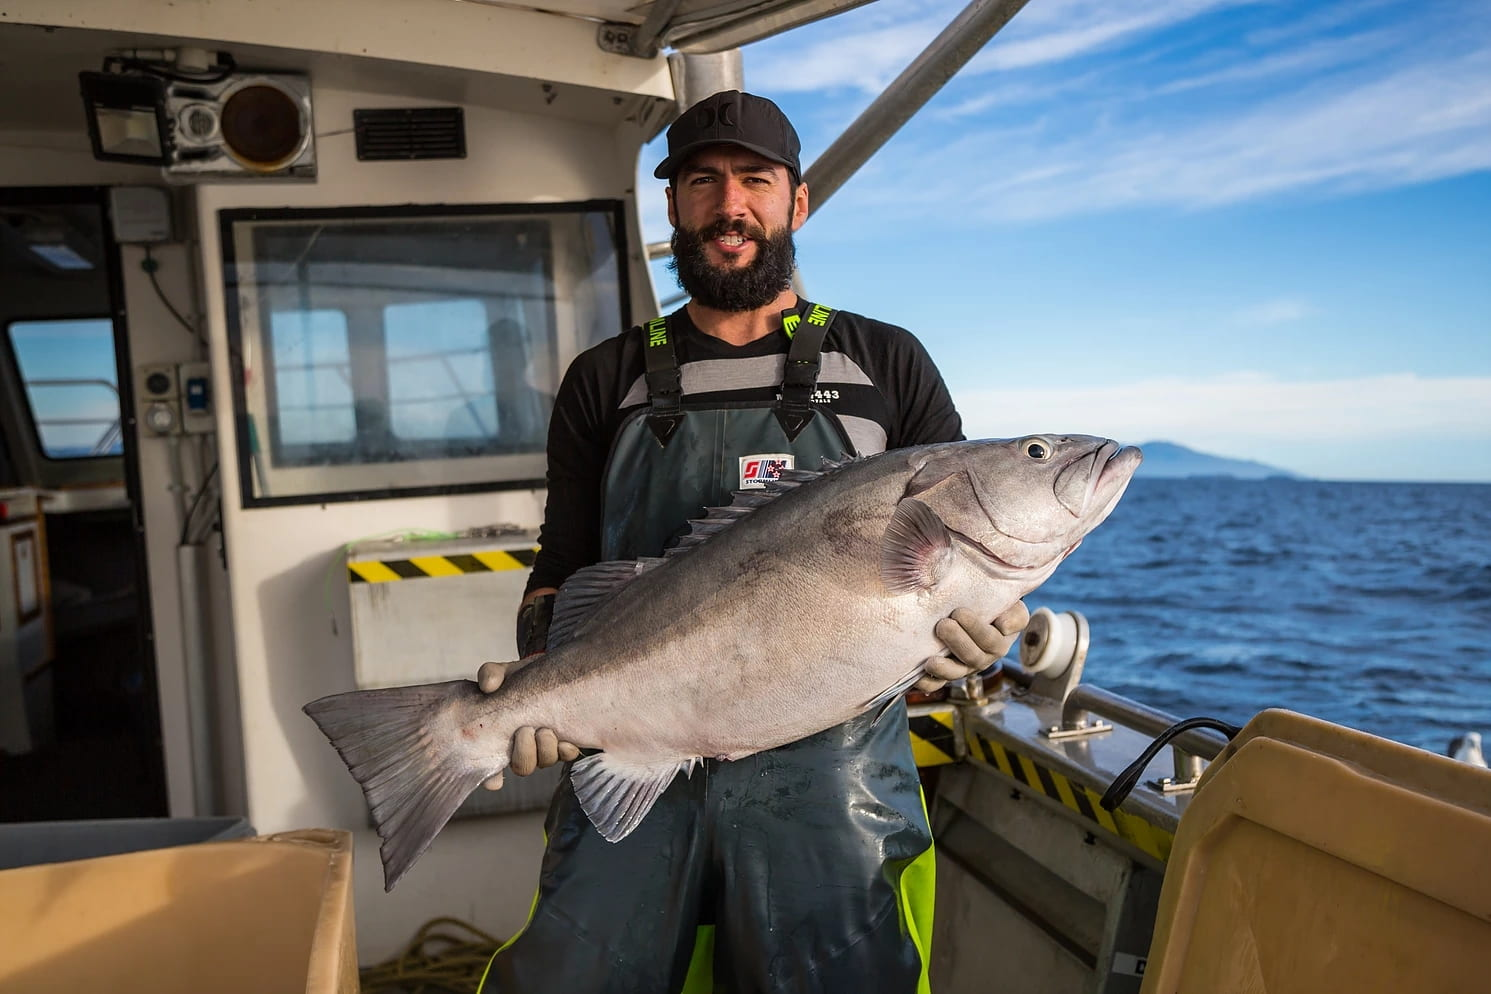 A smiling man with a beard and a cap stands on the deck of a fishing vessel, holding a large silver-grey fish